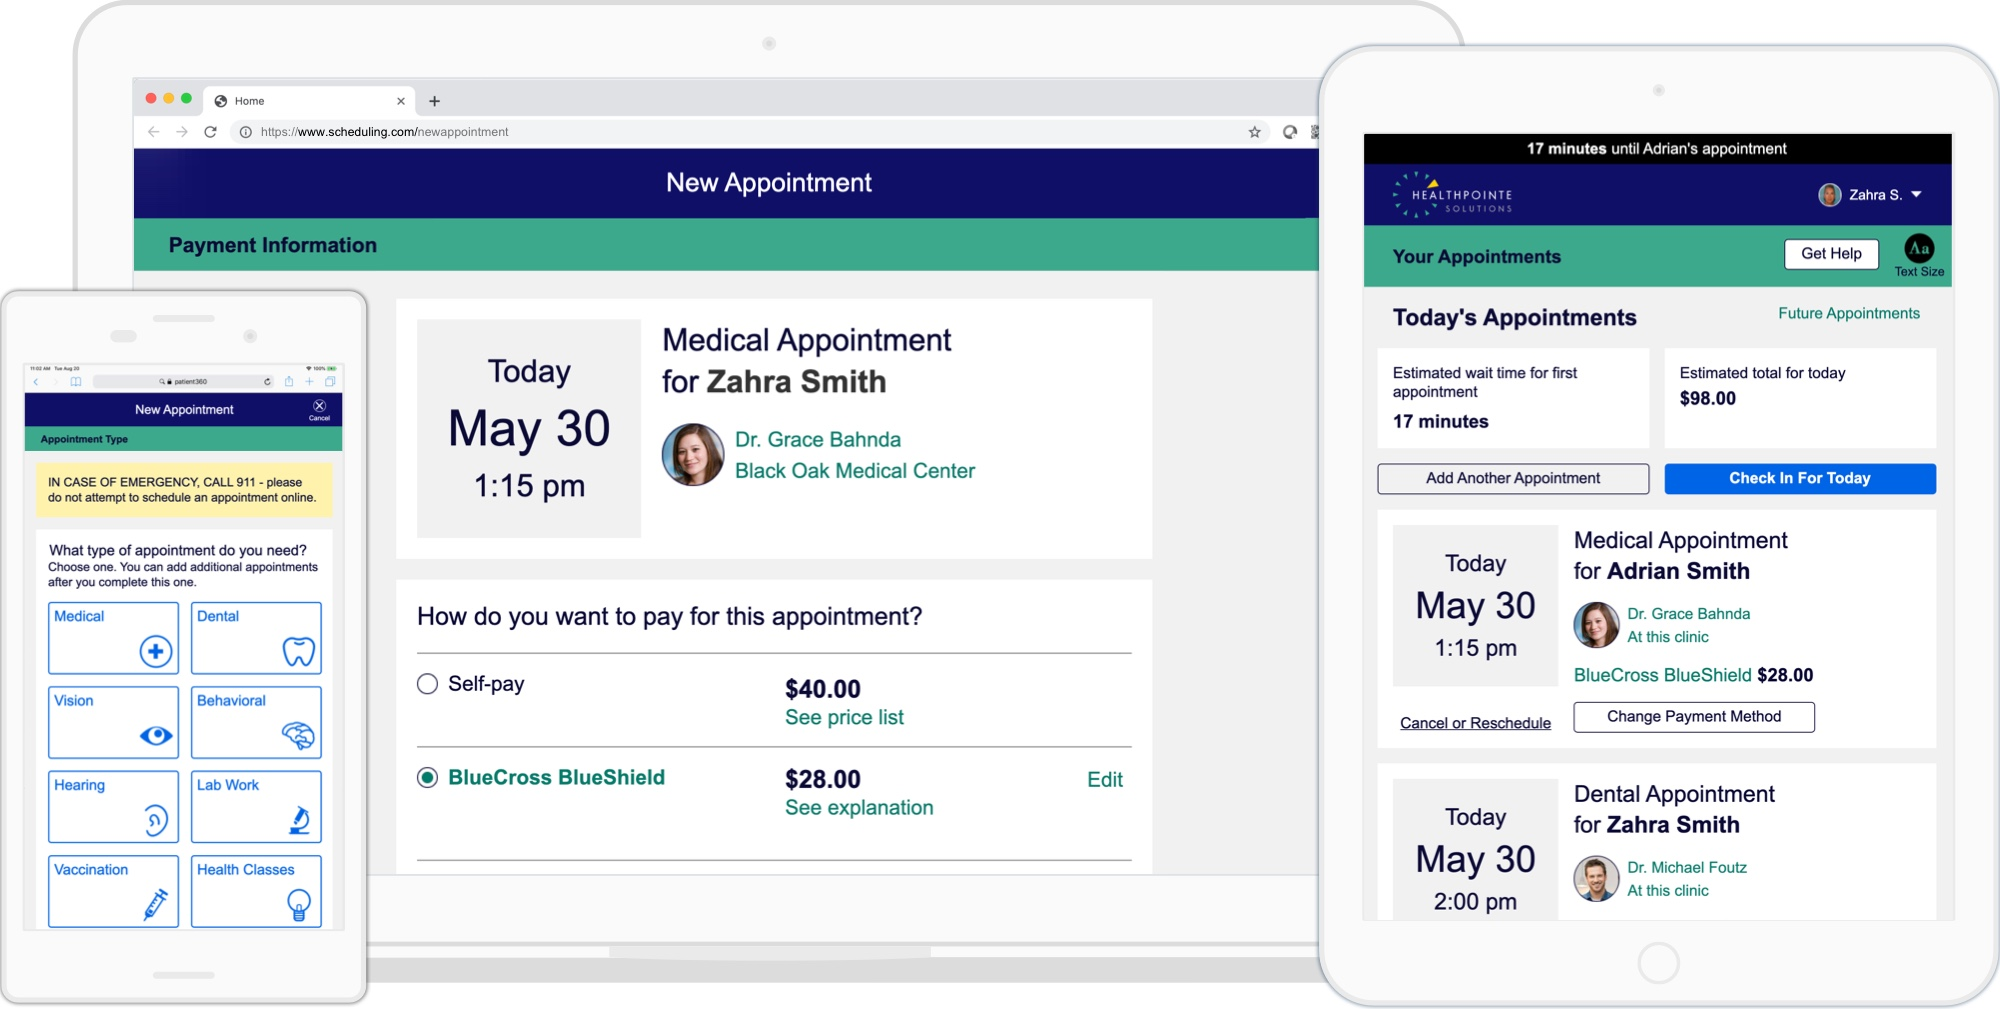 Screens from scheduling application showing appointment types, payment options and today's scheduled appointments.